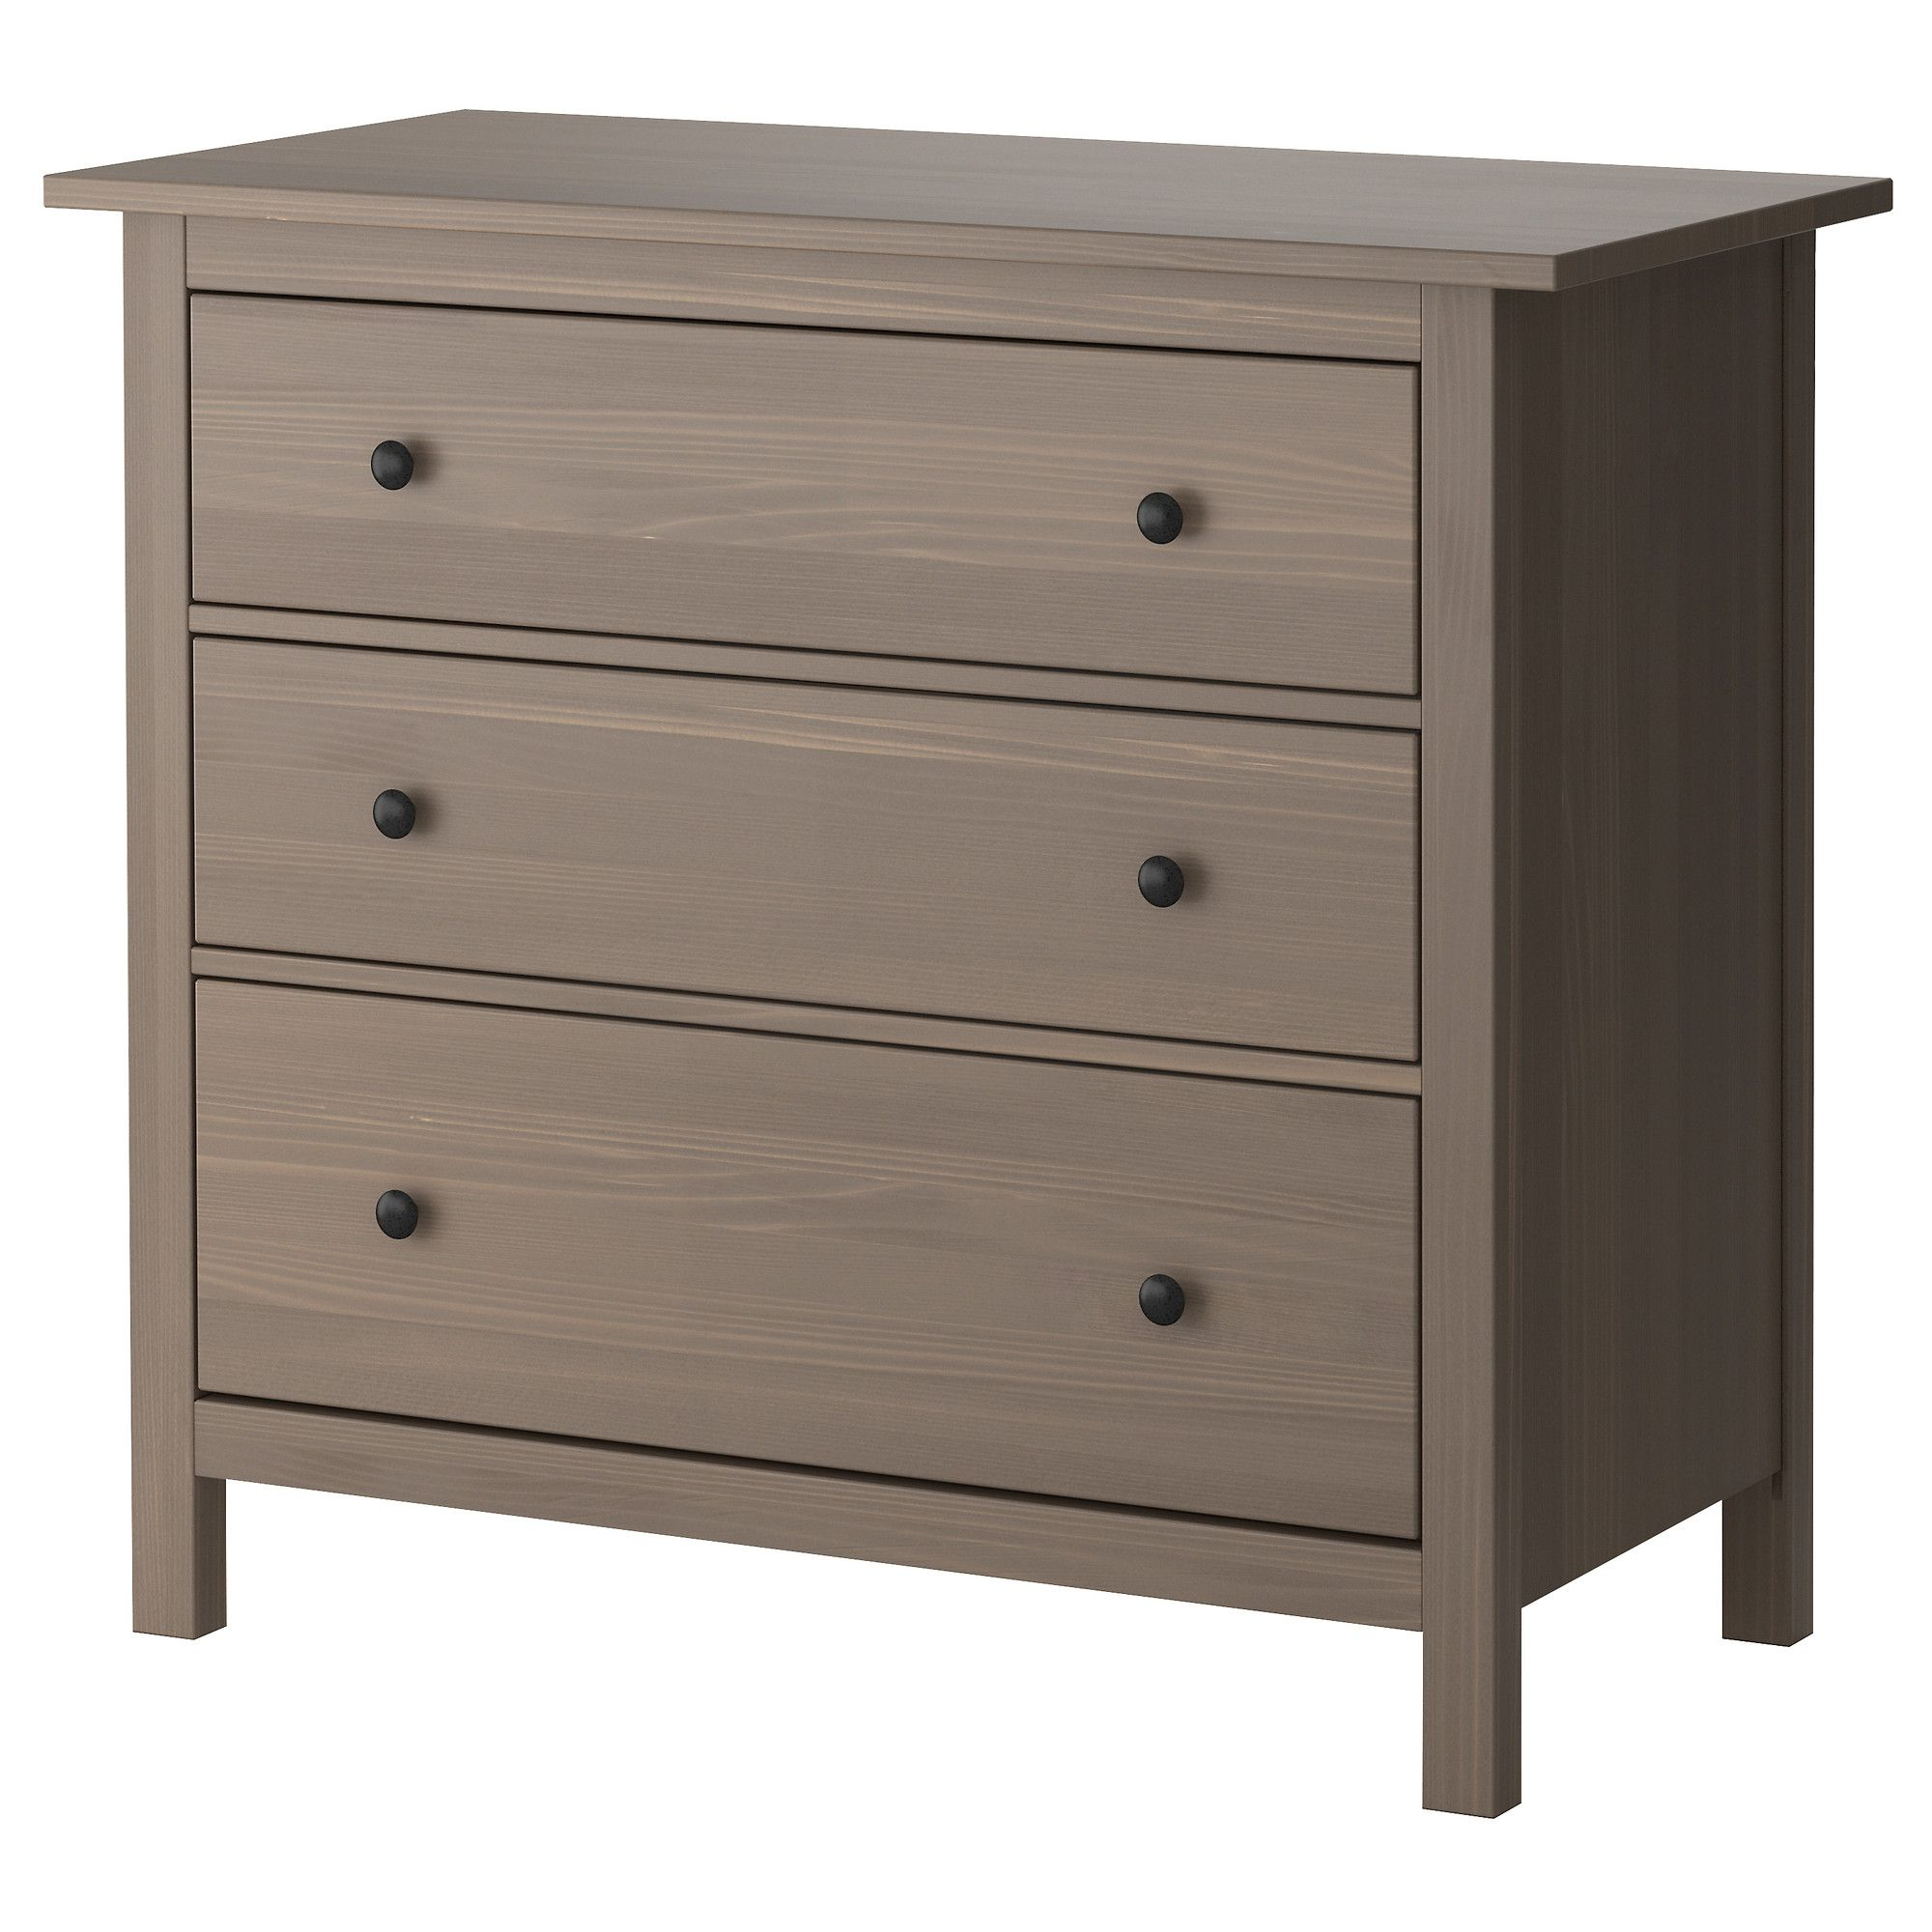 hemnes commode 3 tiroirs gris brun ikea 119 chambre montroug pinterest hemnes. Black Bedroom Furniture Sets. Home Design Ideas